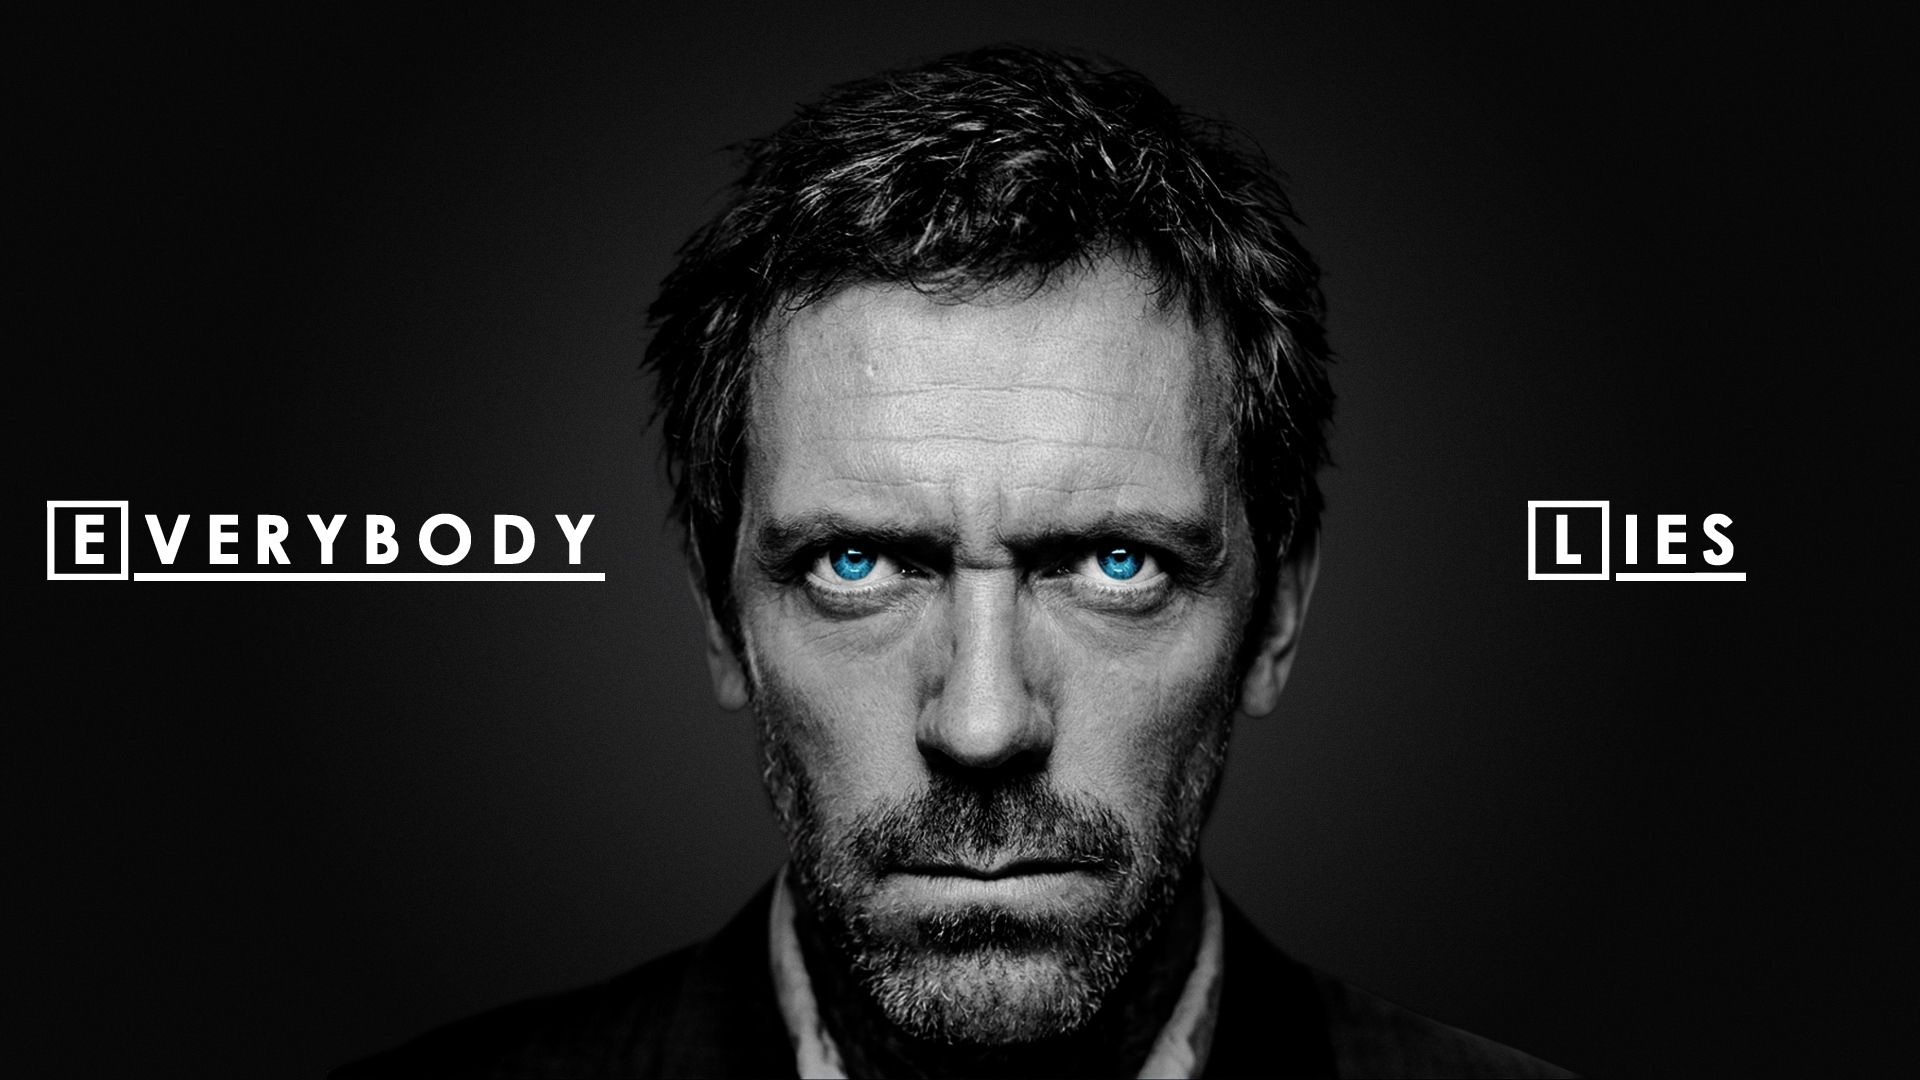 1920x1080 Everybody Lies Dr.House Wallpaper Download | House md, Dr house, Everybody  lies